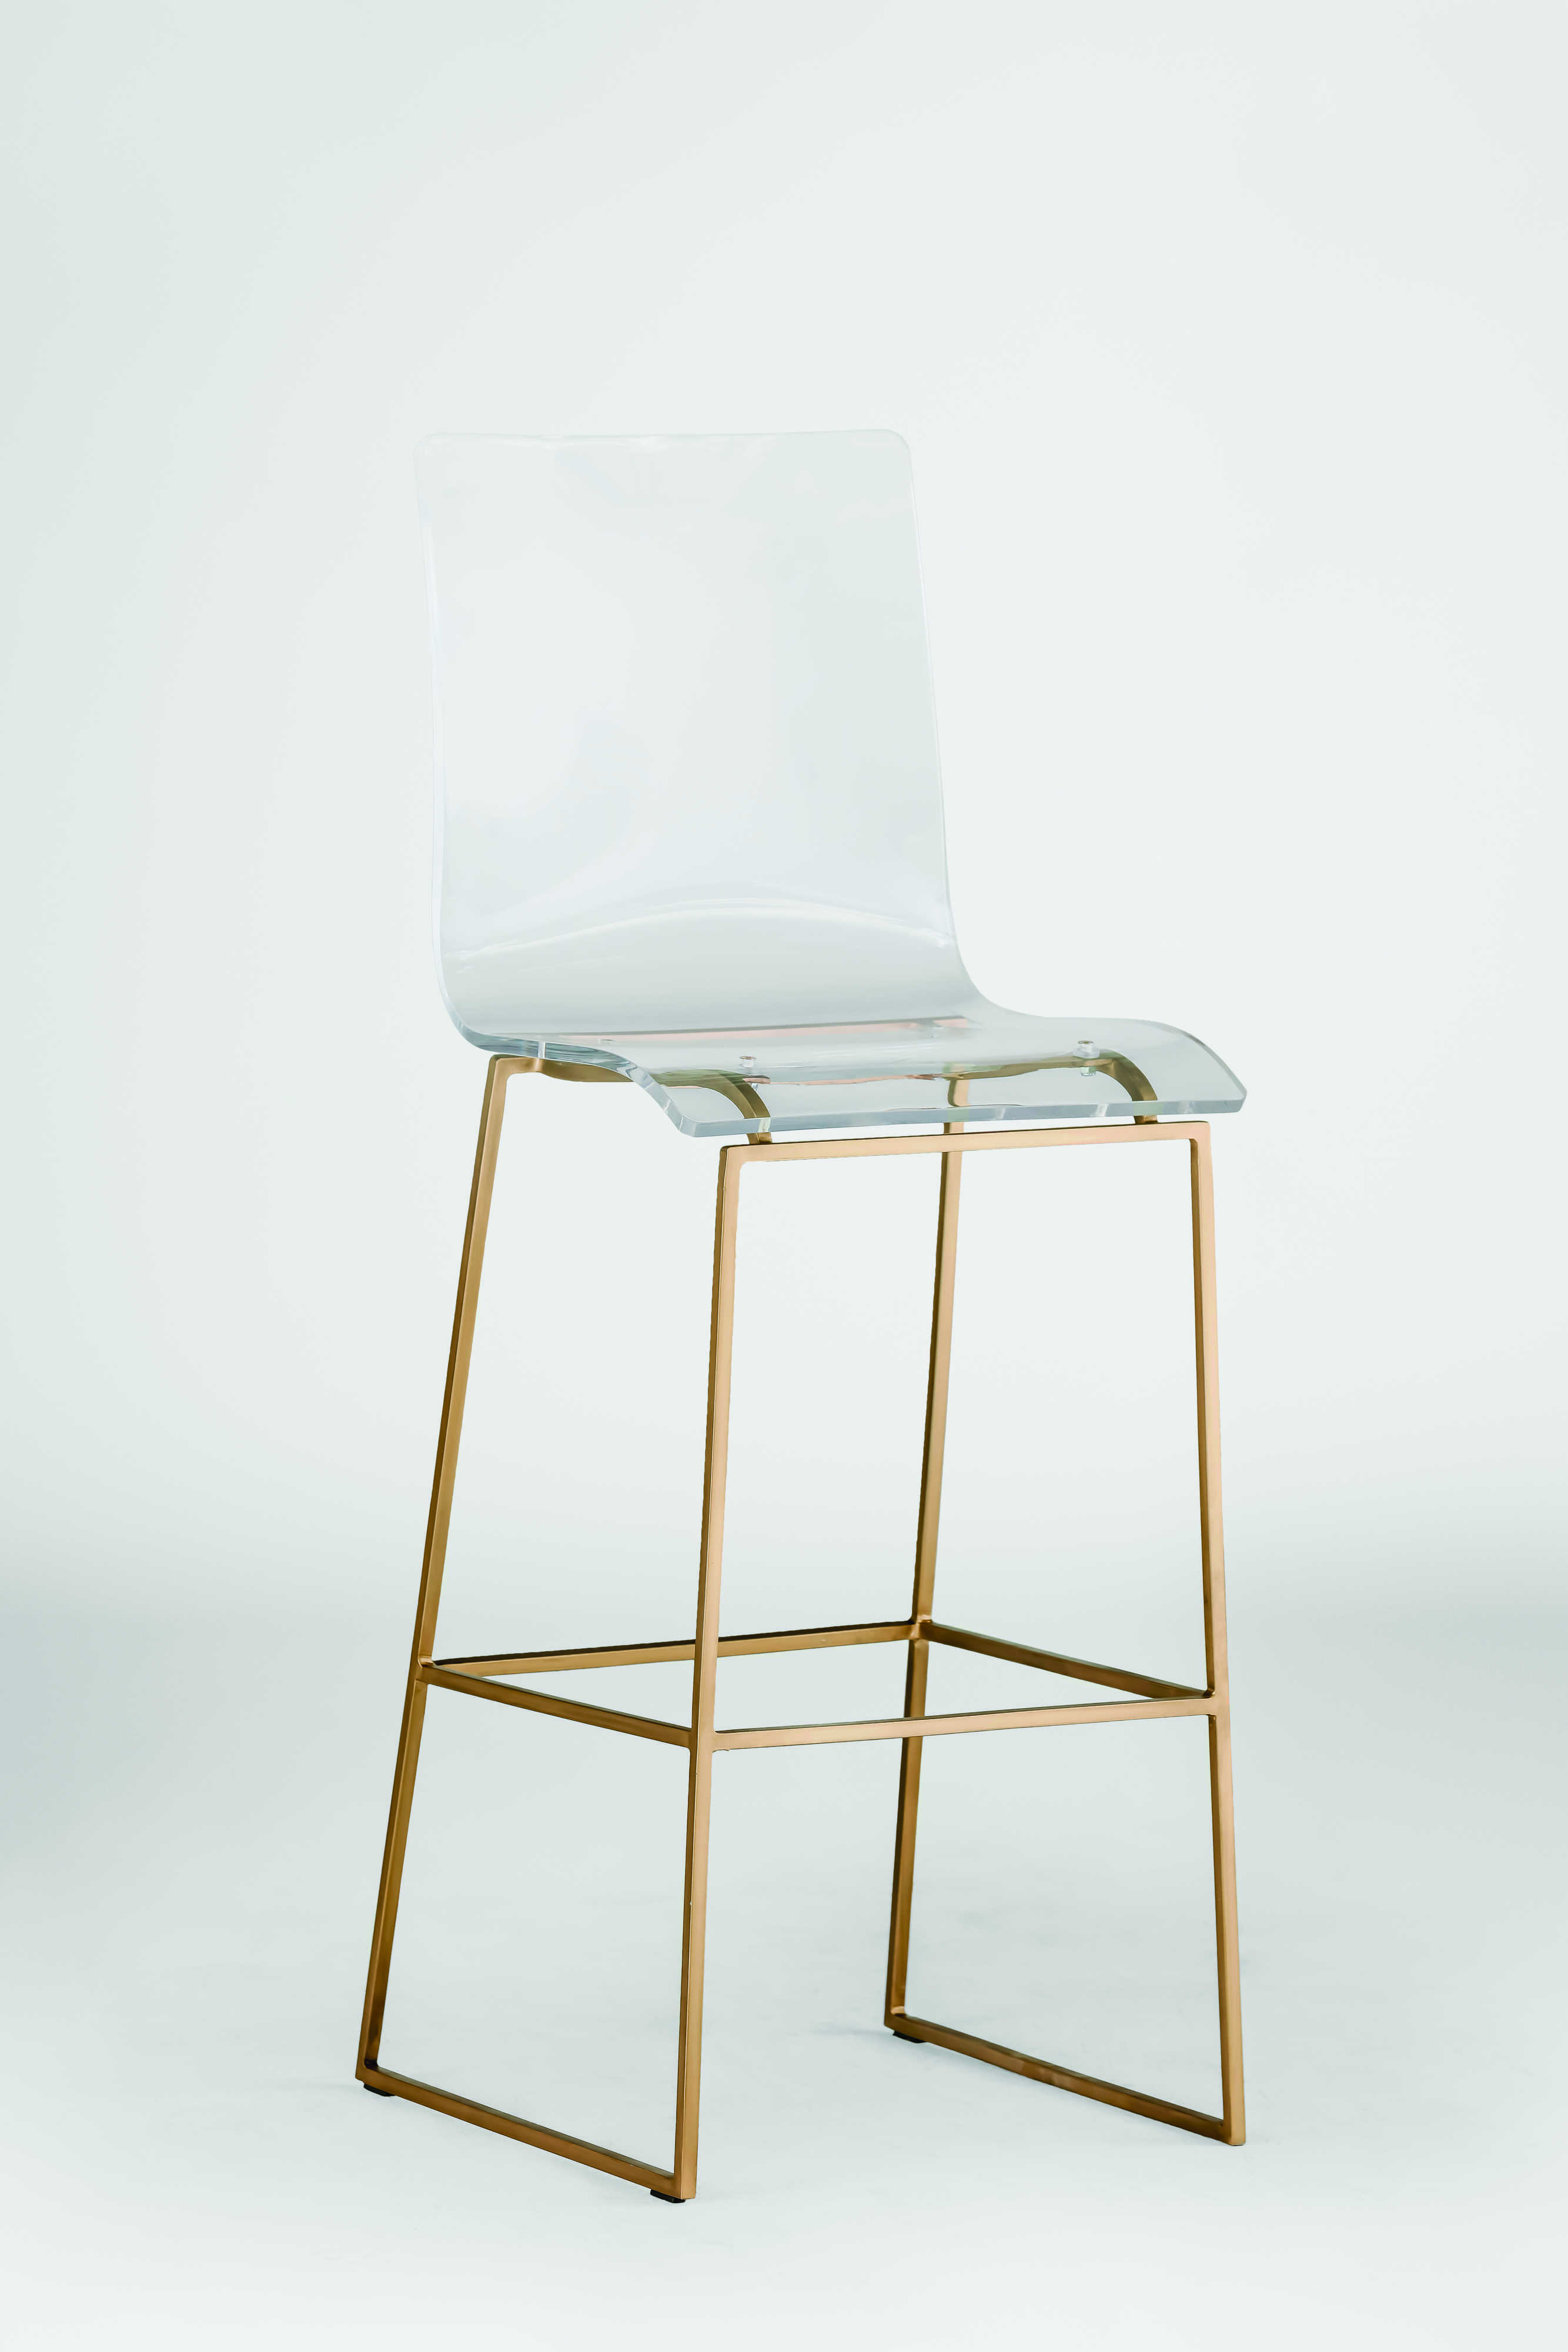 Gabby King Antique Gold Amp Clear Acrylic Bar Stool